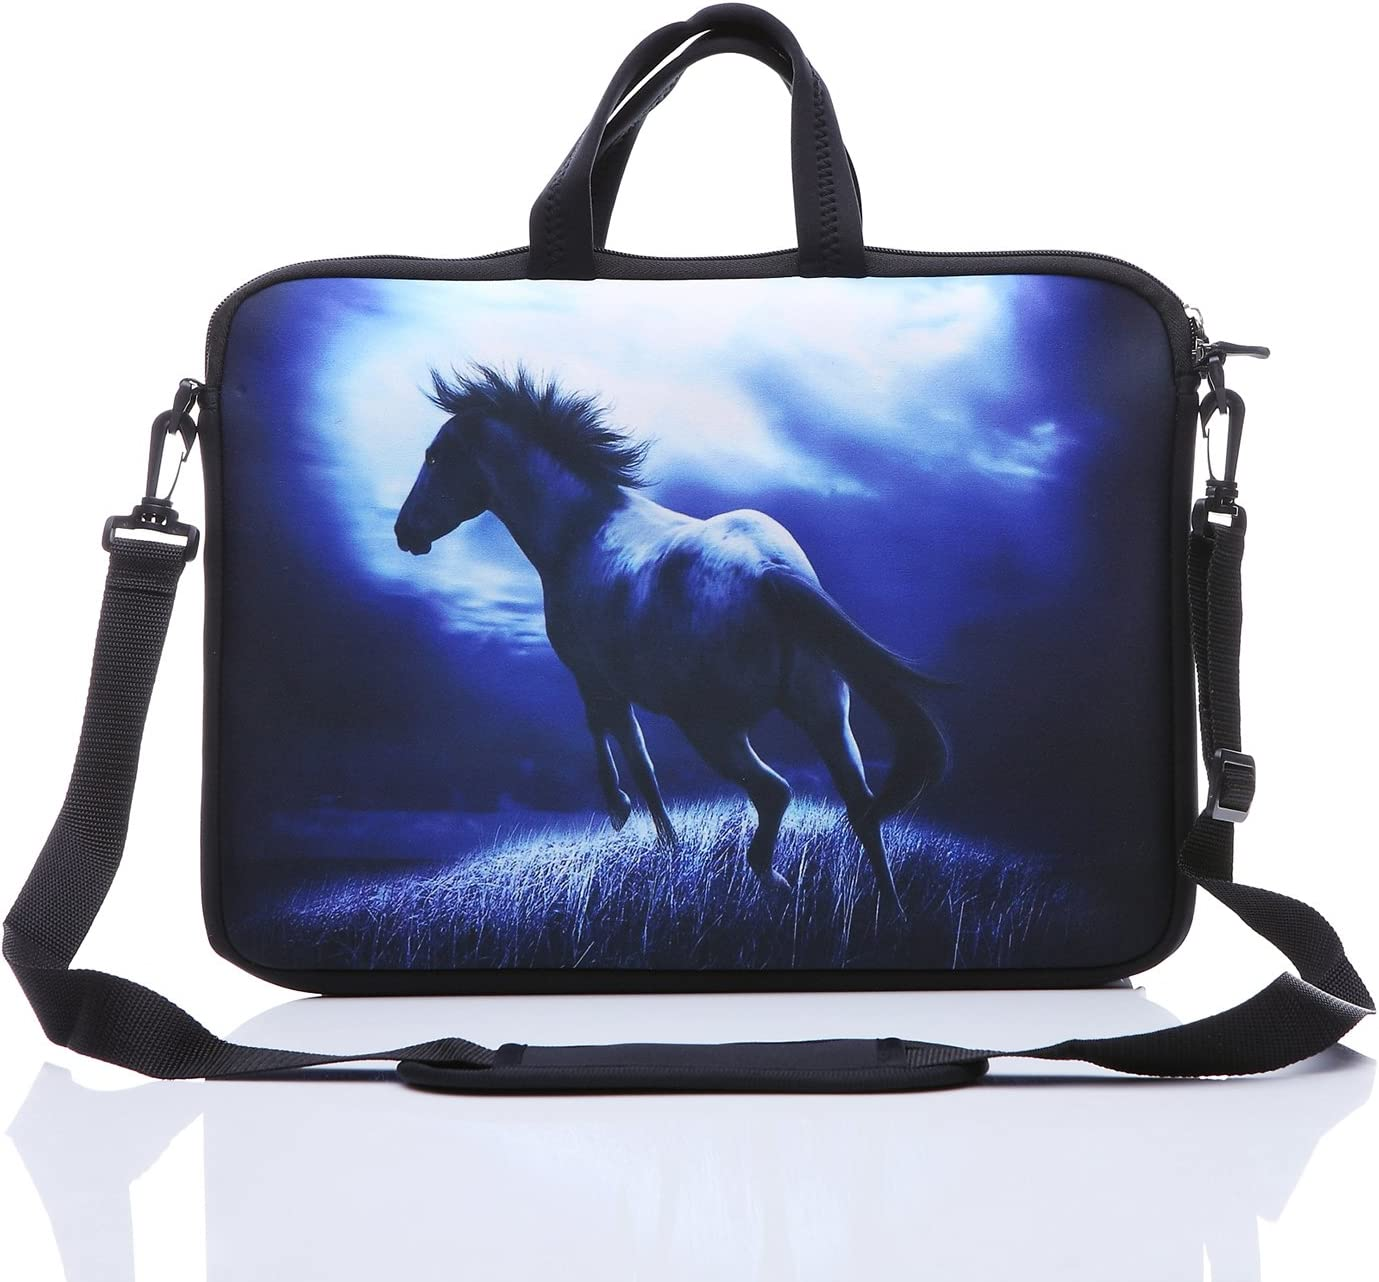 "YIDA 10-Inch Laptop Shoulder Sleeve Case and Tablet Bag for Most 9.7"" 10"" 10.1"" 10.2"" Ipad/Notebook/eBook/Readers (Blue Horse)"